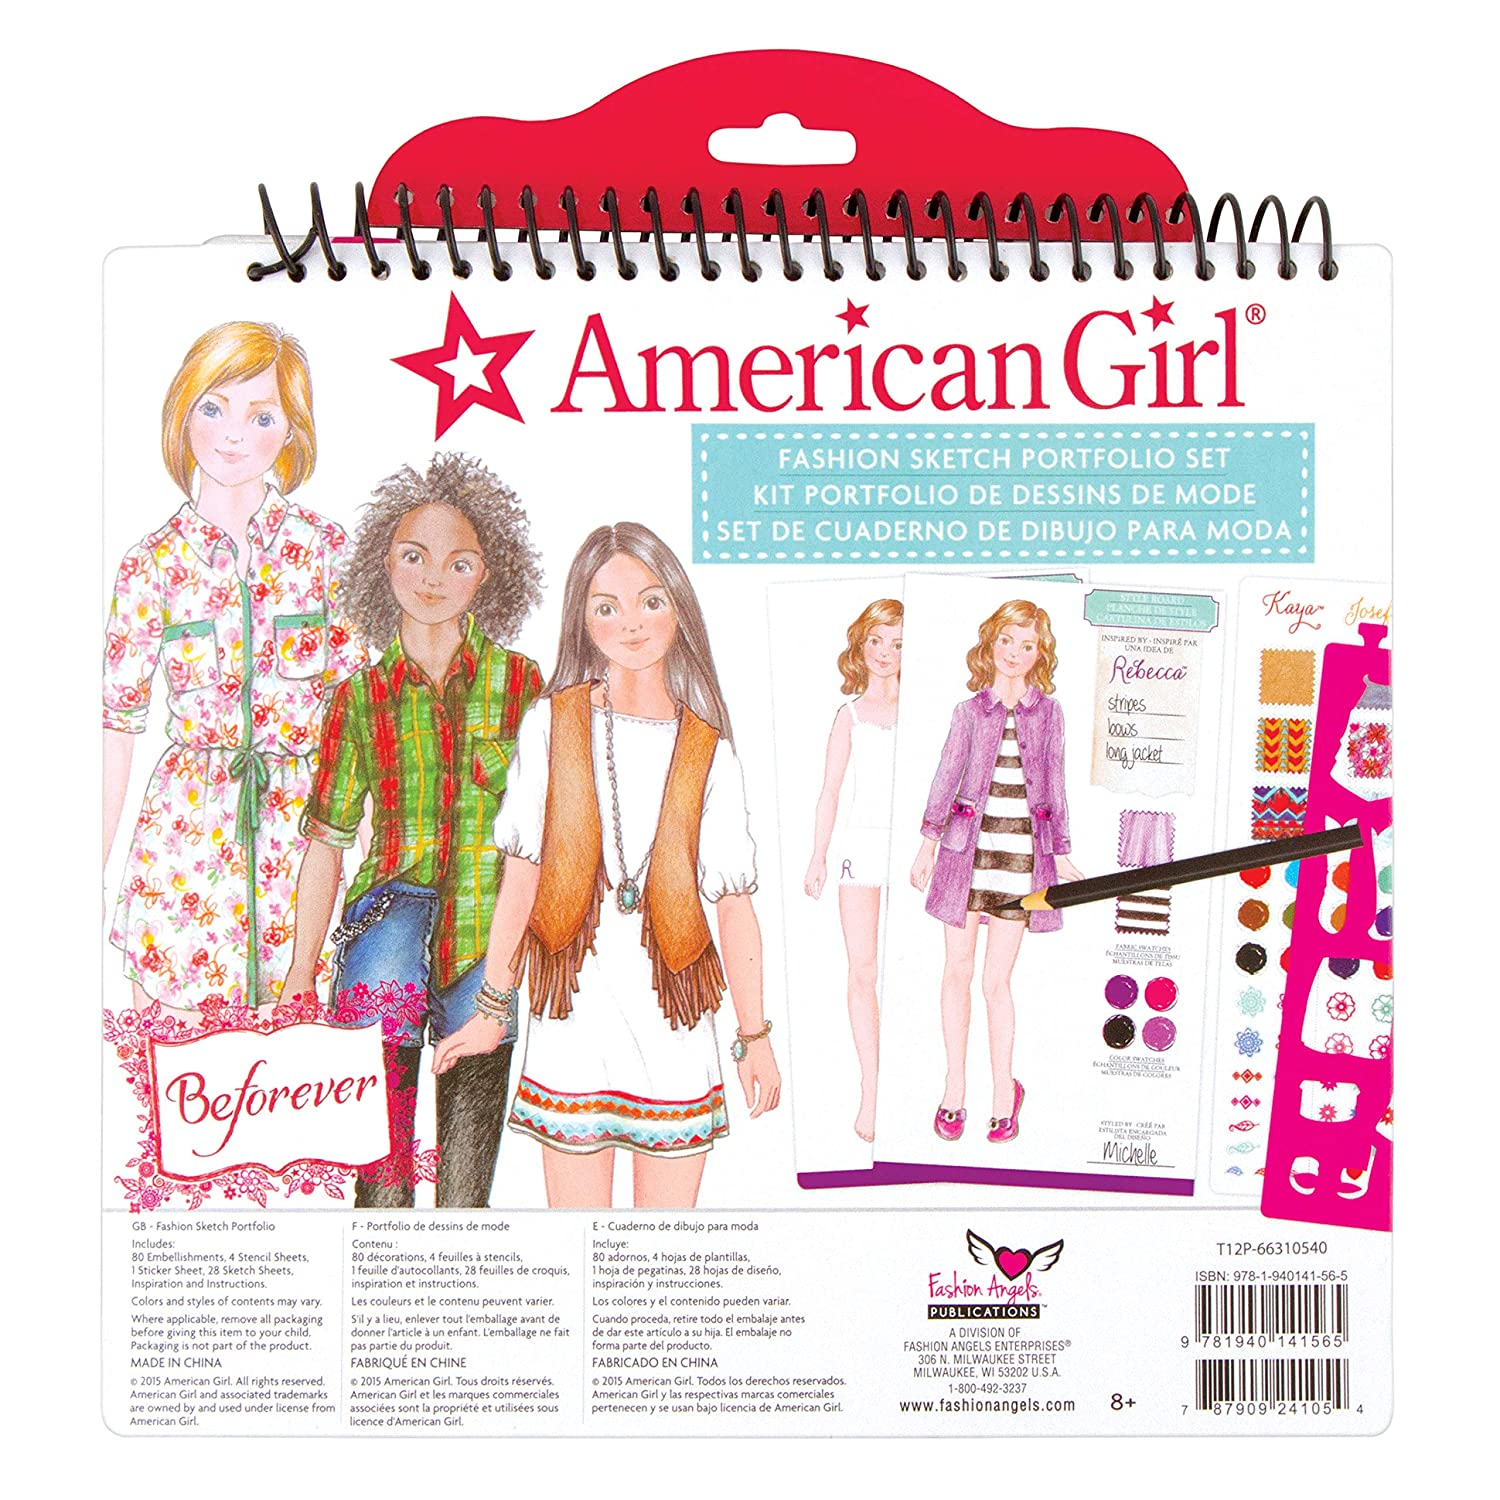 Buy American Girl Beforever Fashion Sketch Portfolio Online At Low Prices In India Amazon In